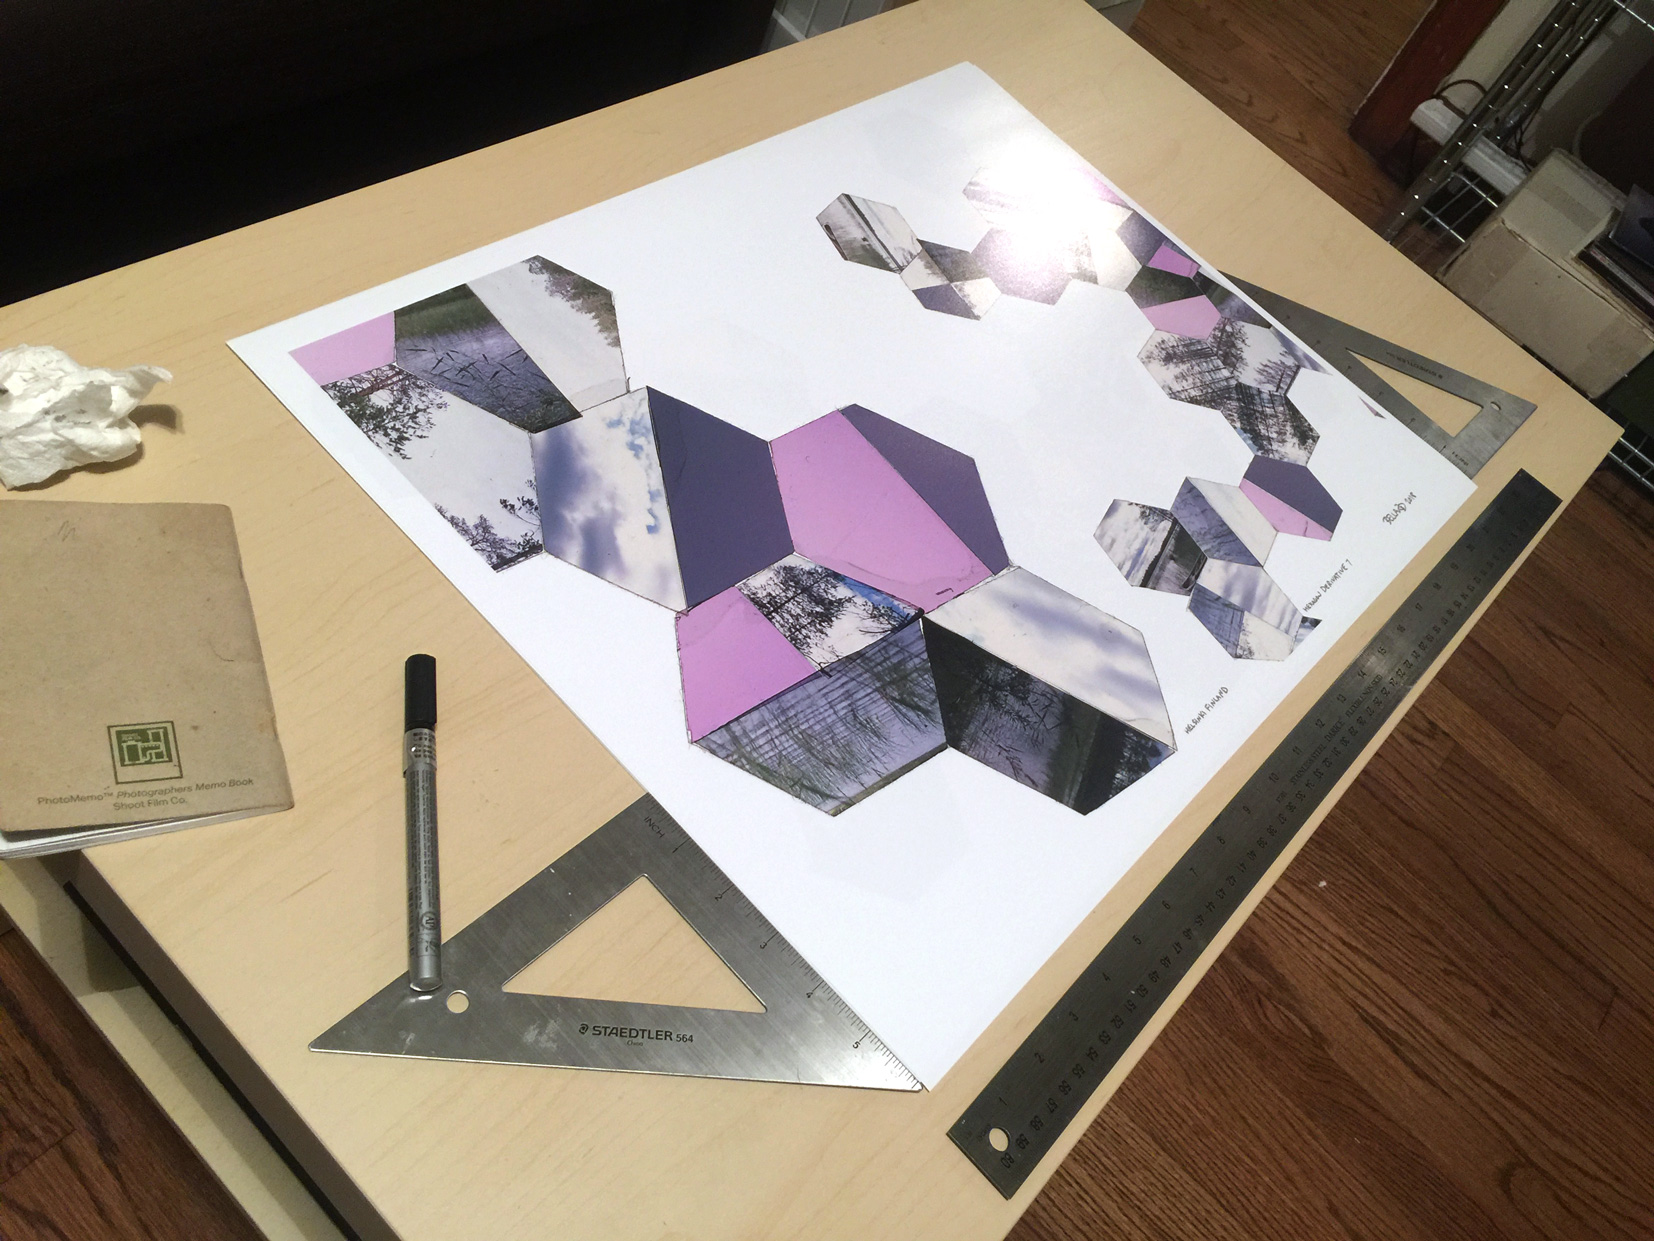 Signing and framing the prints.